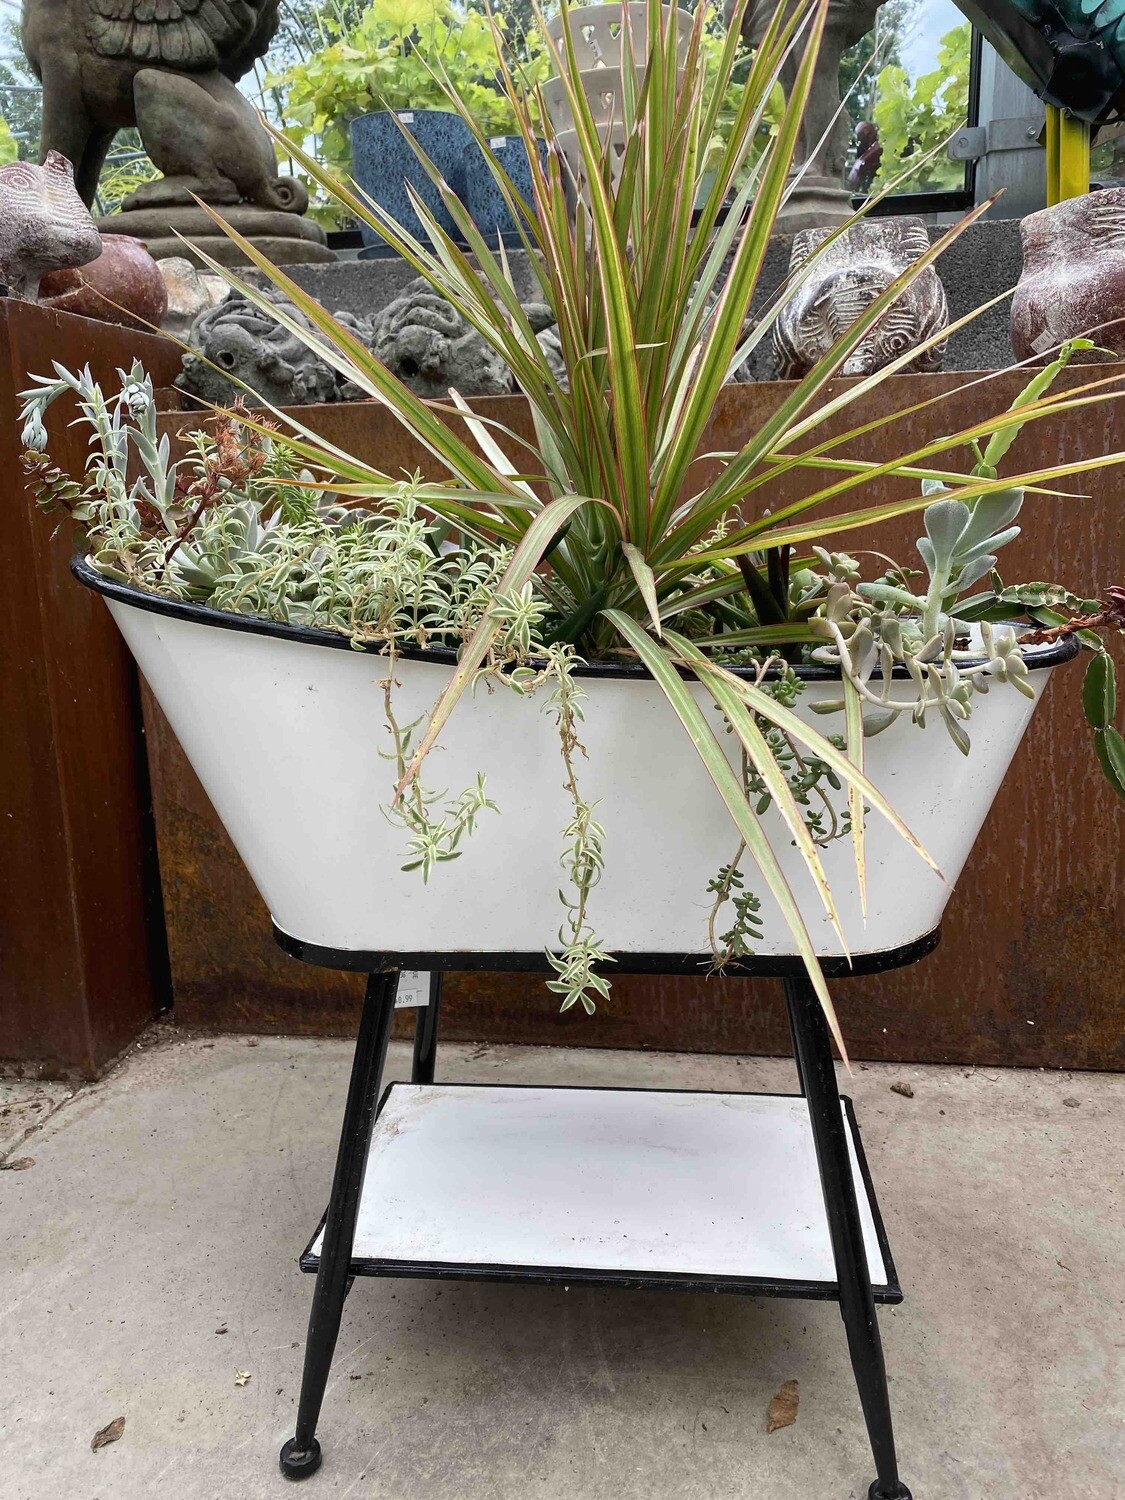 Standing Tub Planter - Dracena Spike and Succulents